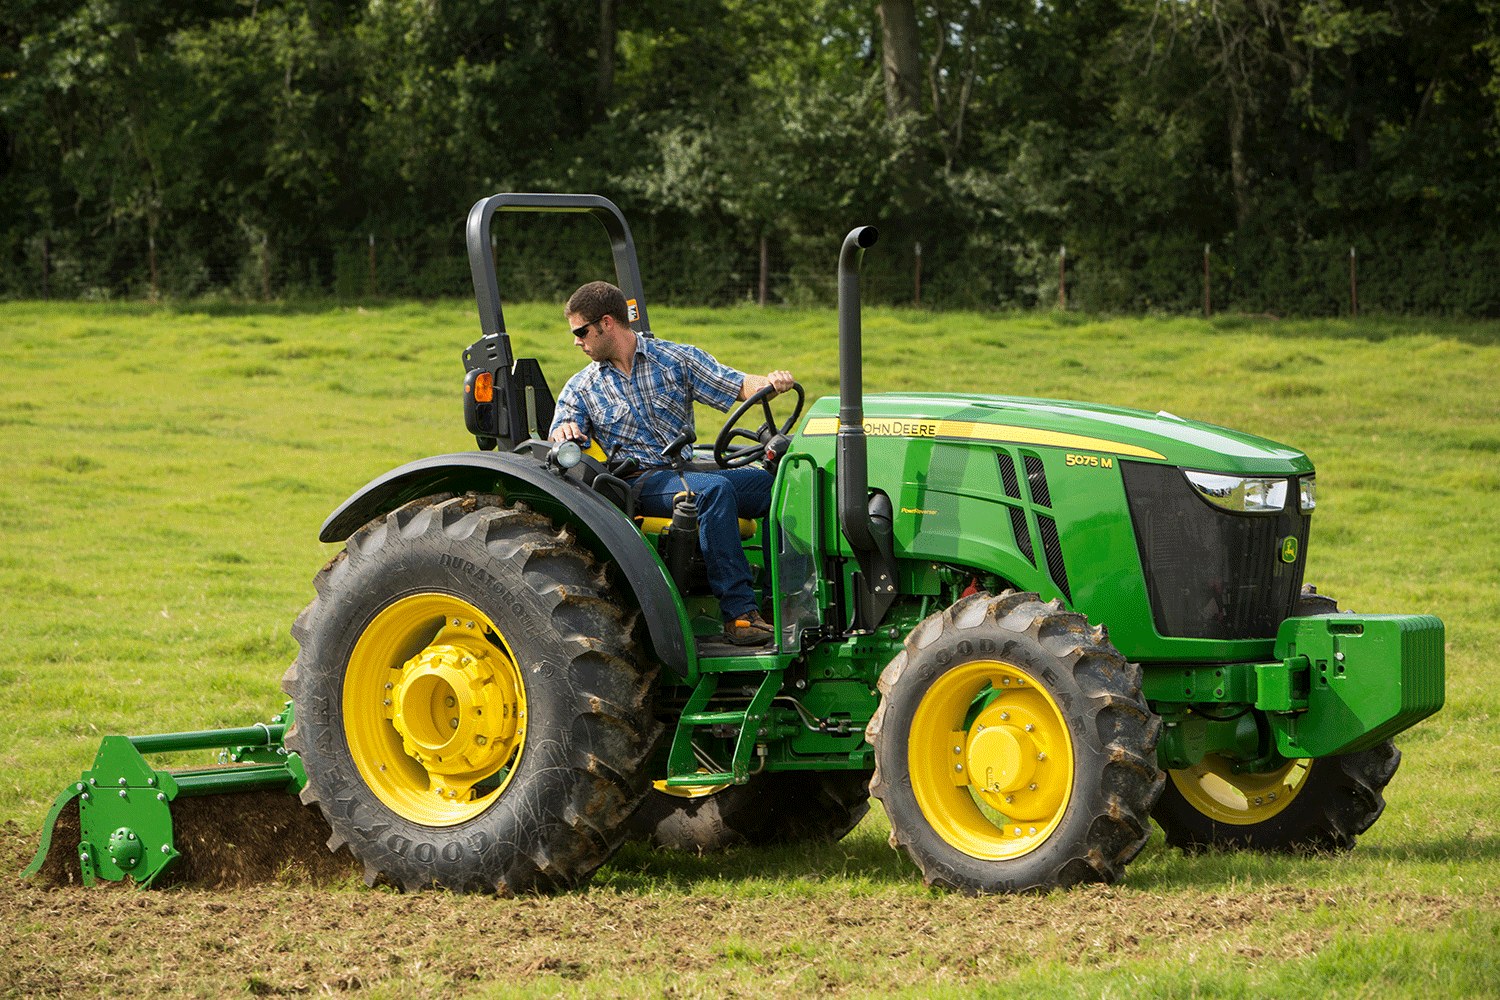 John Deere Line : Pulling up the curtain on new line of john deere